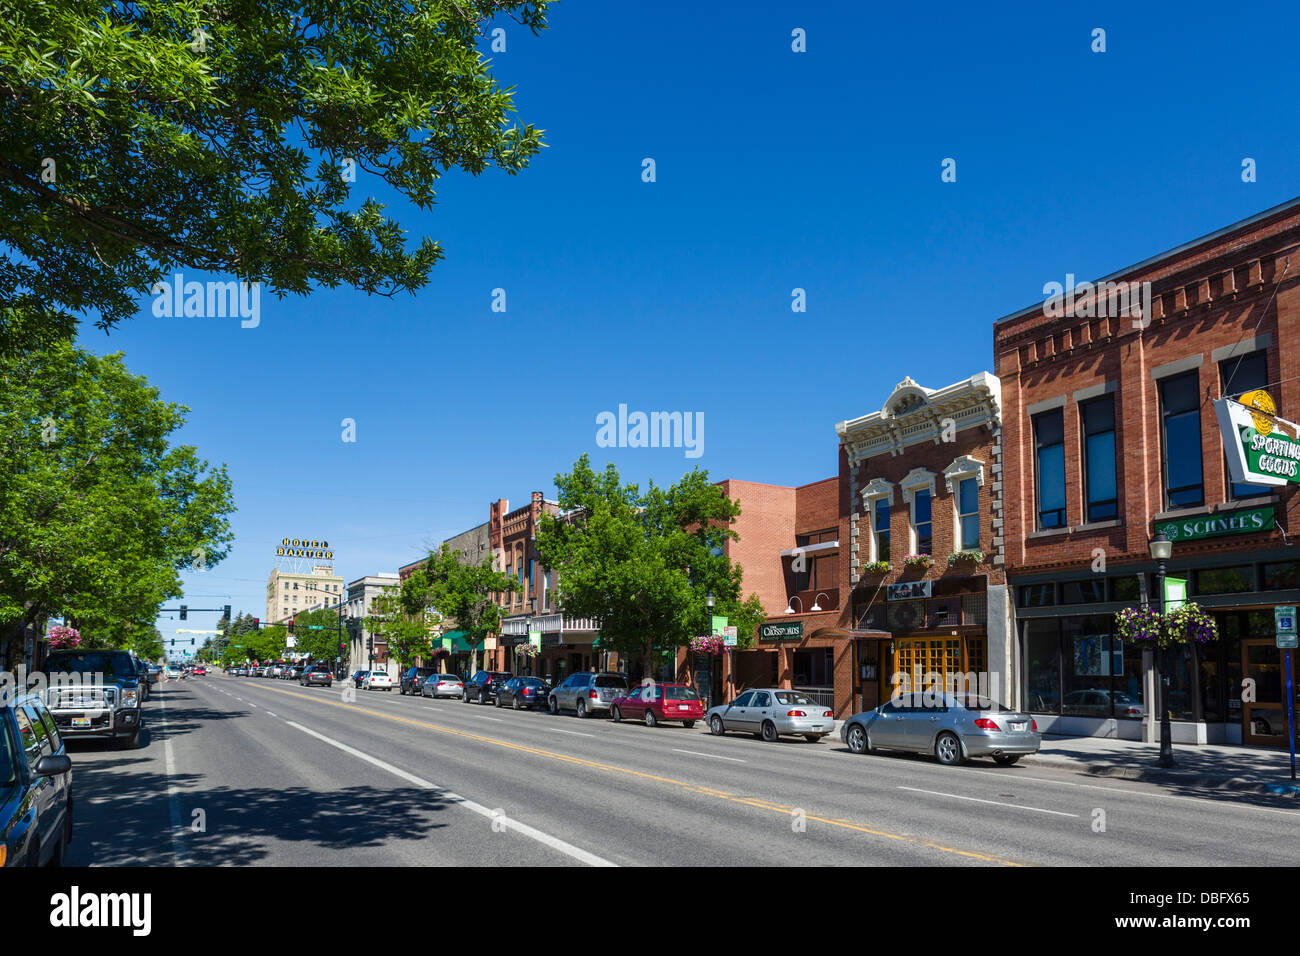 Best Bozeman Shopping: See reviews and photos of shops, malls & outlets in Bozeman, Montana on TripAdvisor.